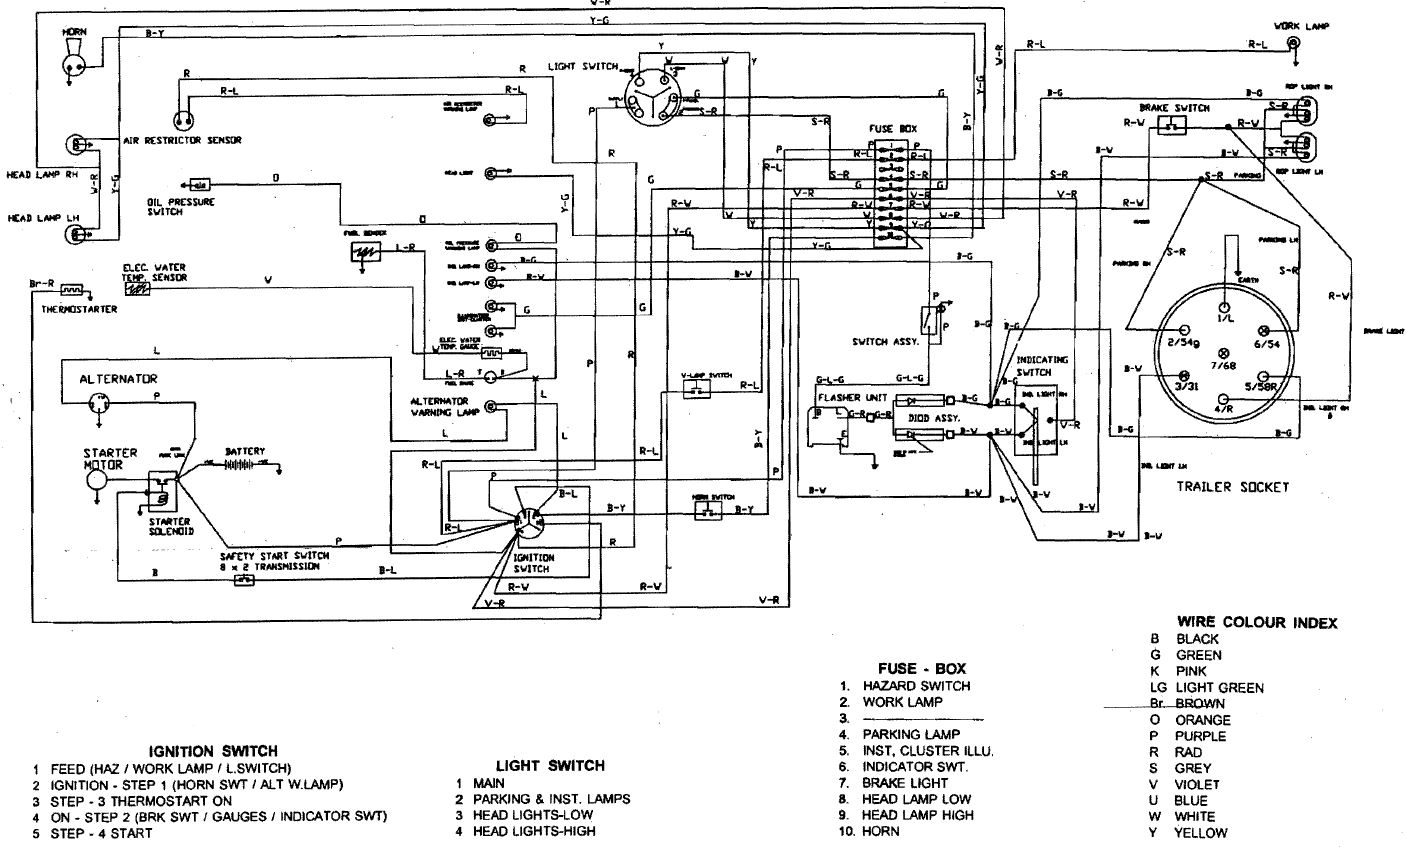 ignition switch wiring diagram case ih air compressor case ih wiring schematic #26